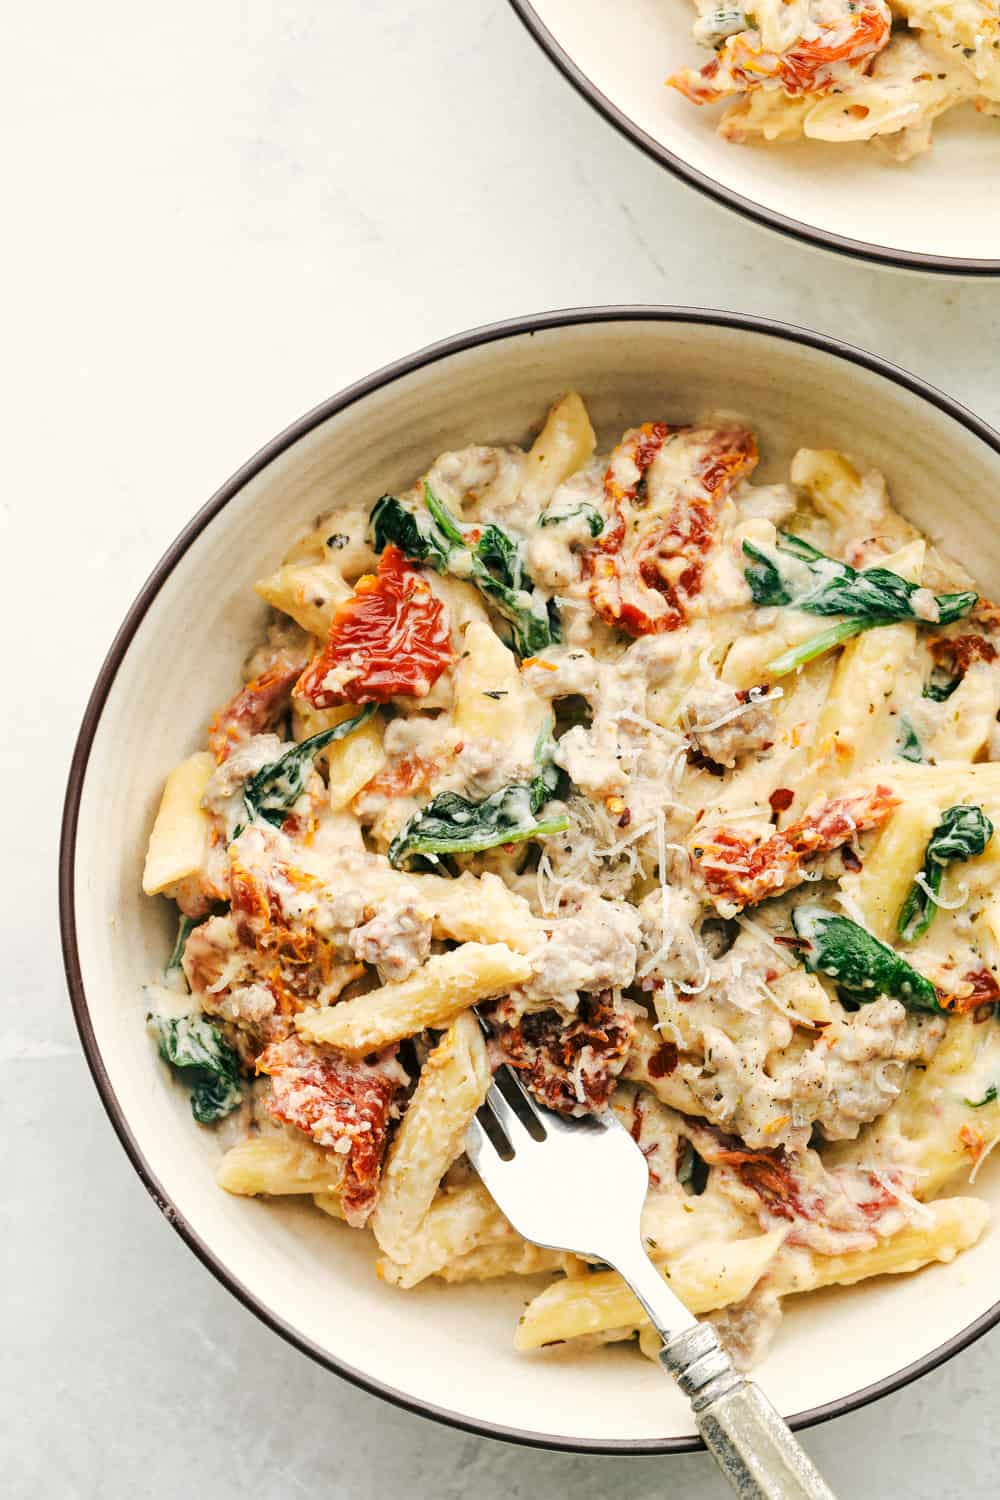 Tuscan sausage pasta in a white bowl with a fork.